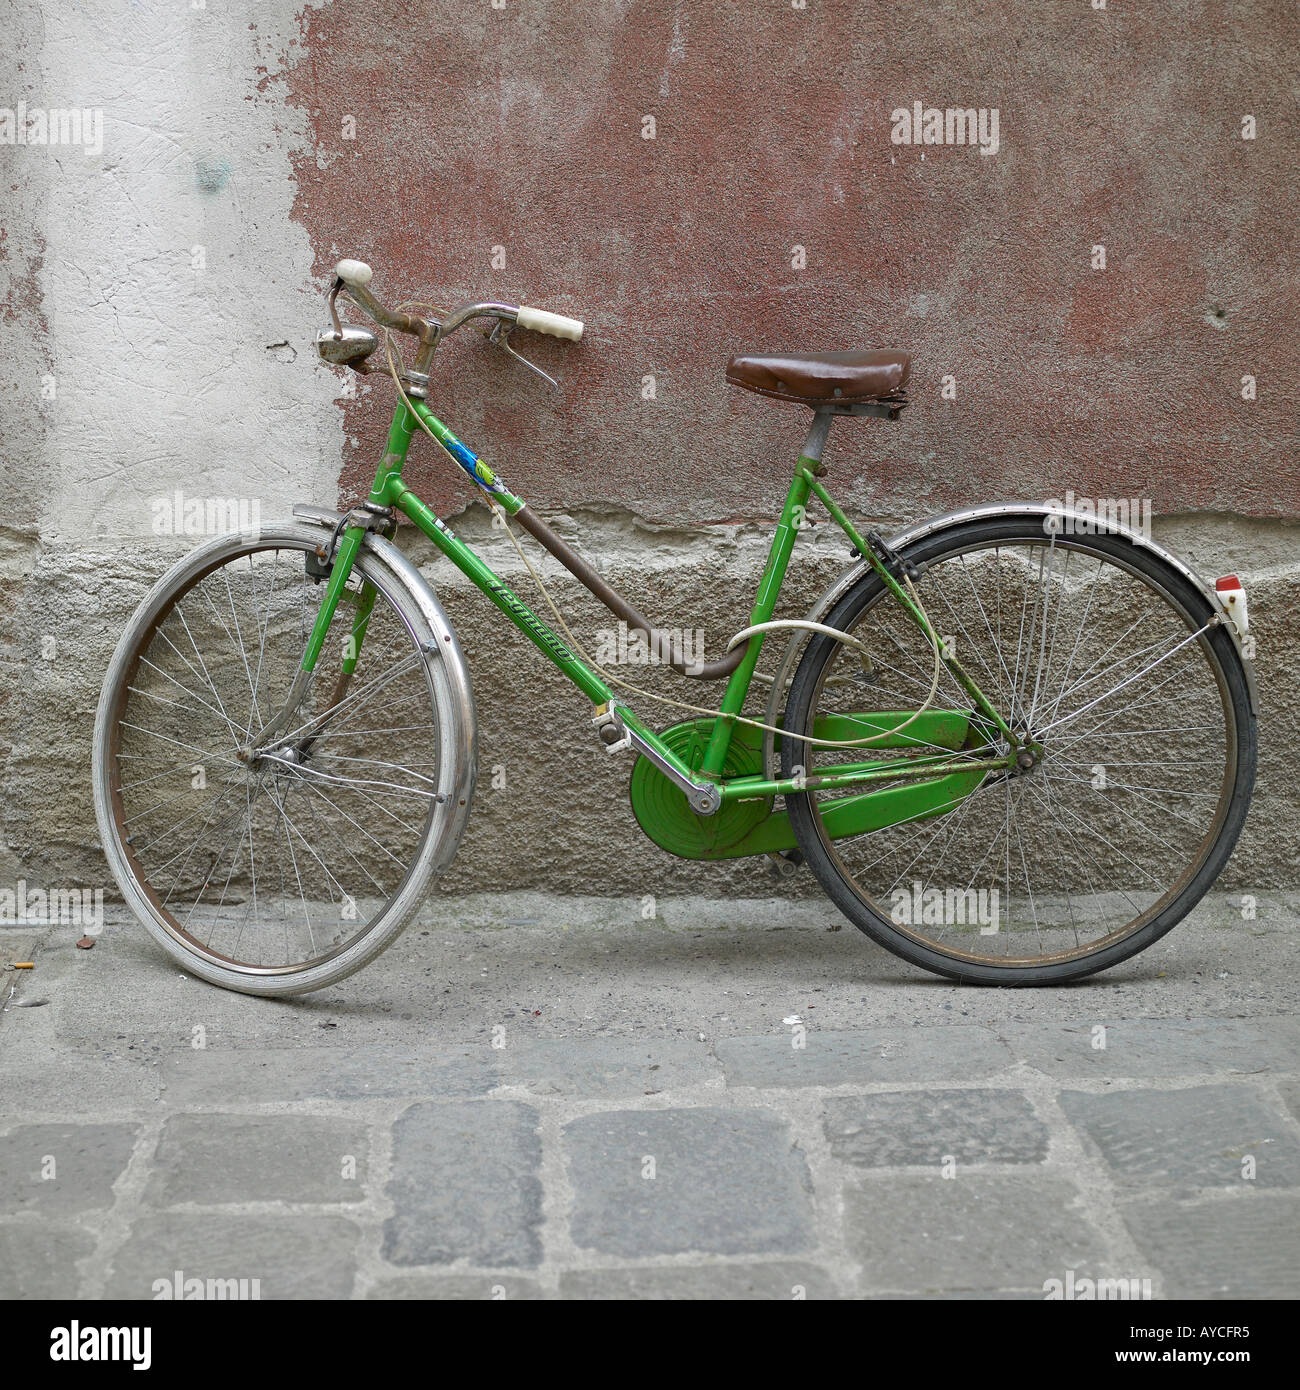 Bicycle leaning against wall in Italian town Stock Photo